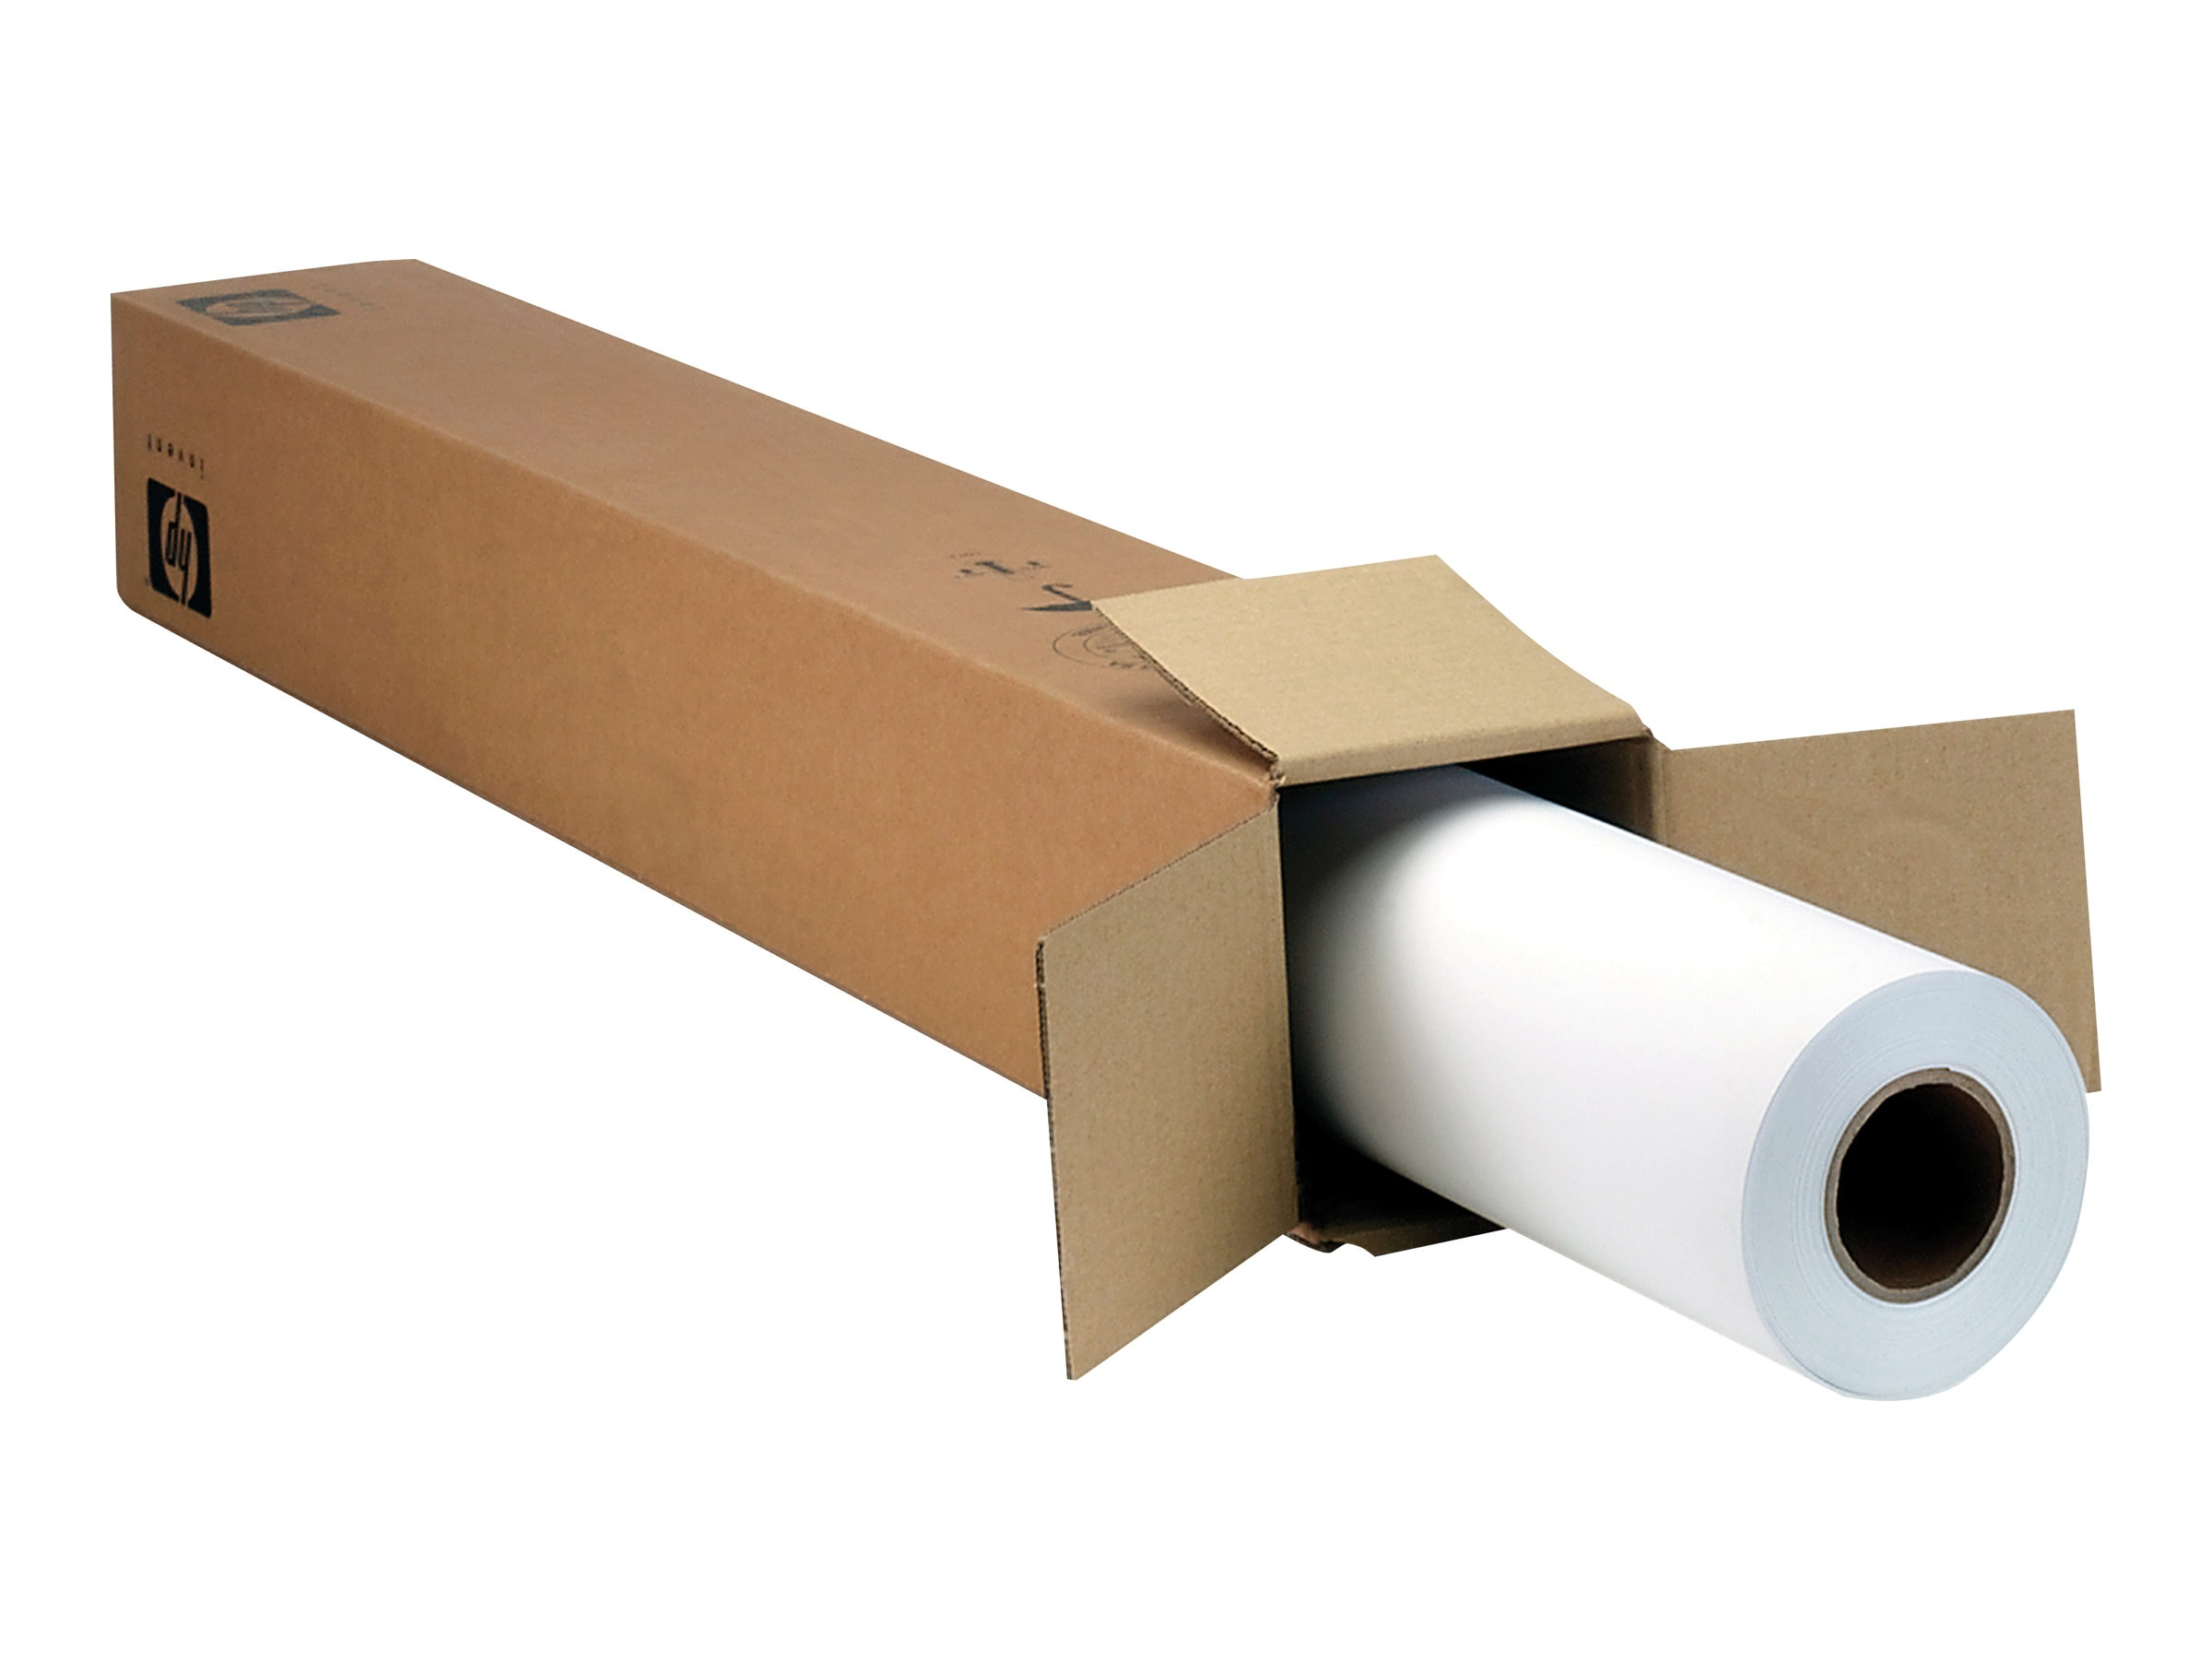 HP 36 x 200' Everyday Matte Polypropylene (2 Rolls), CH024A, 10202386, Paper, Labels & Other Print Media